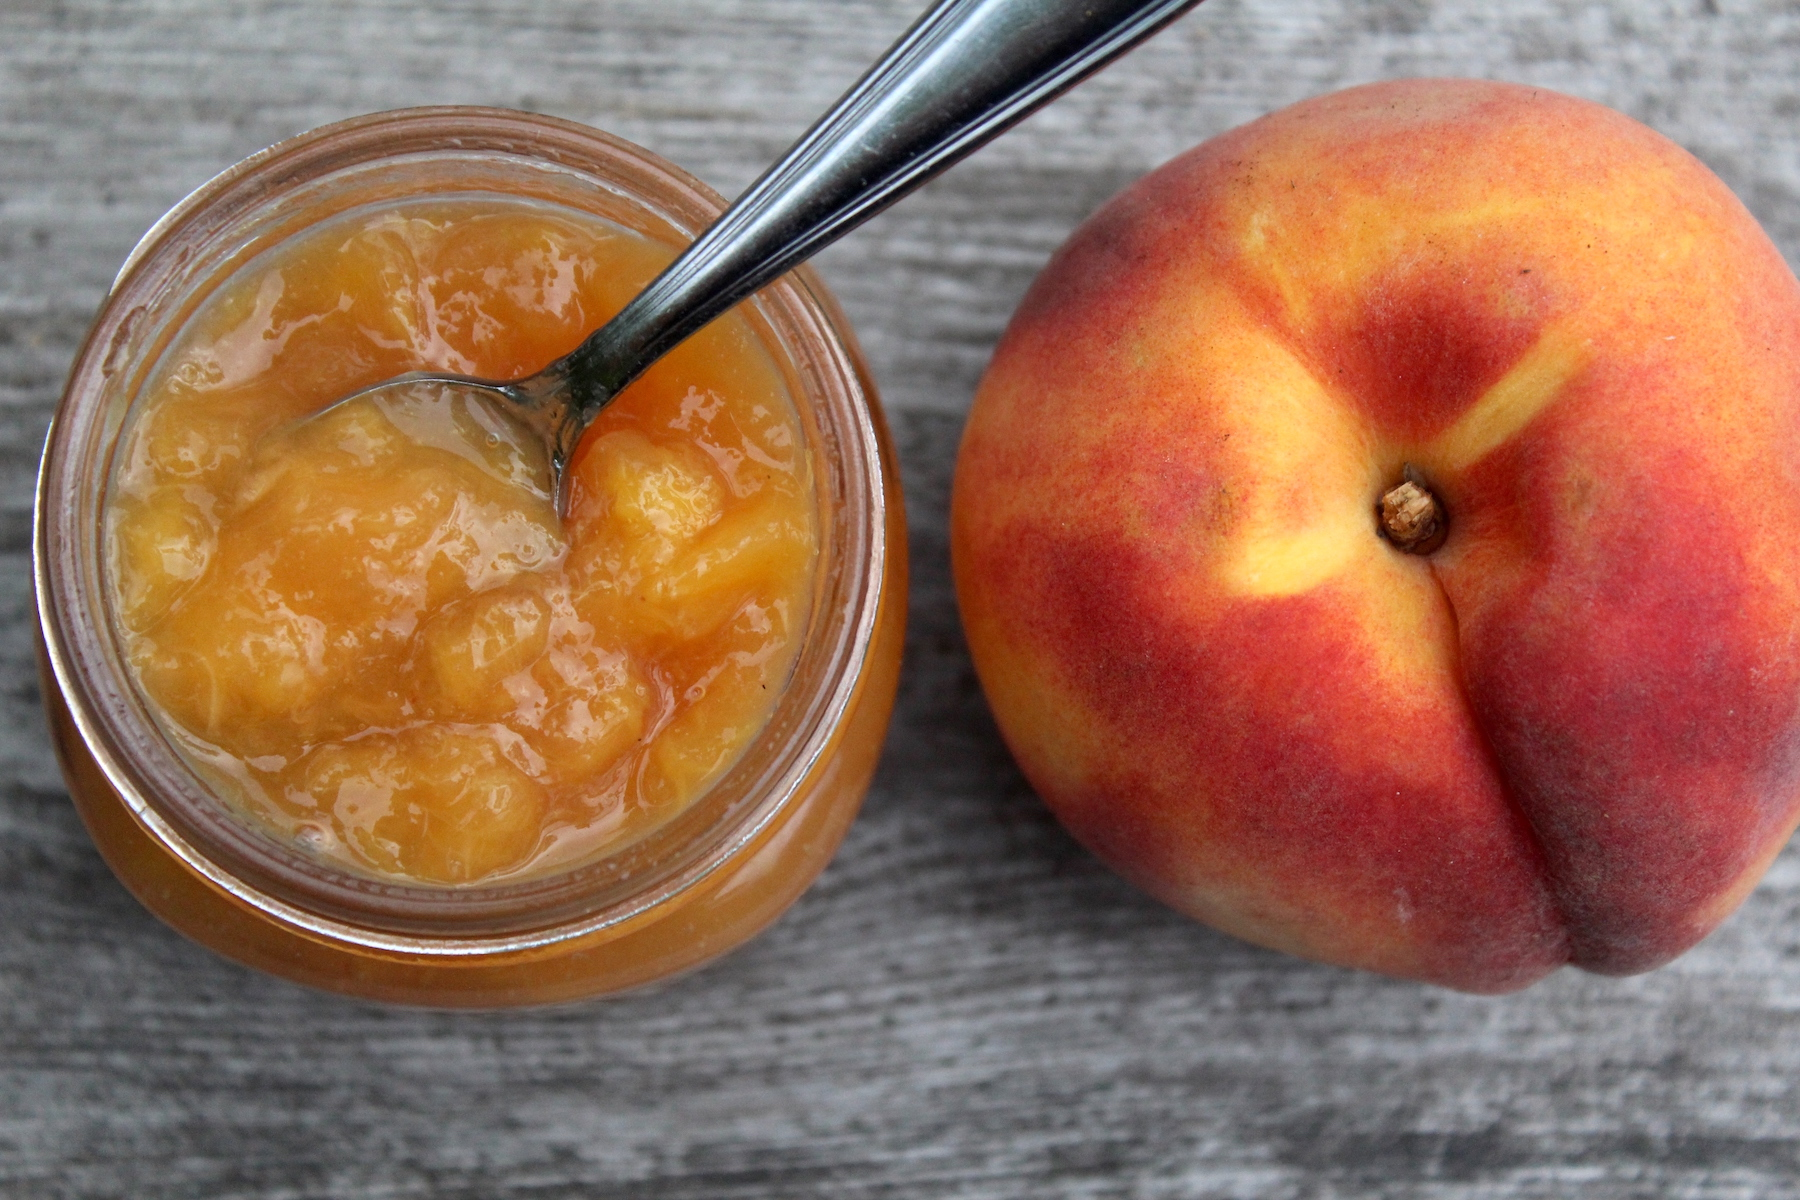 Homemade peach jam